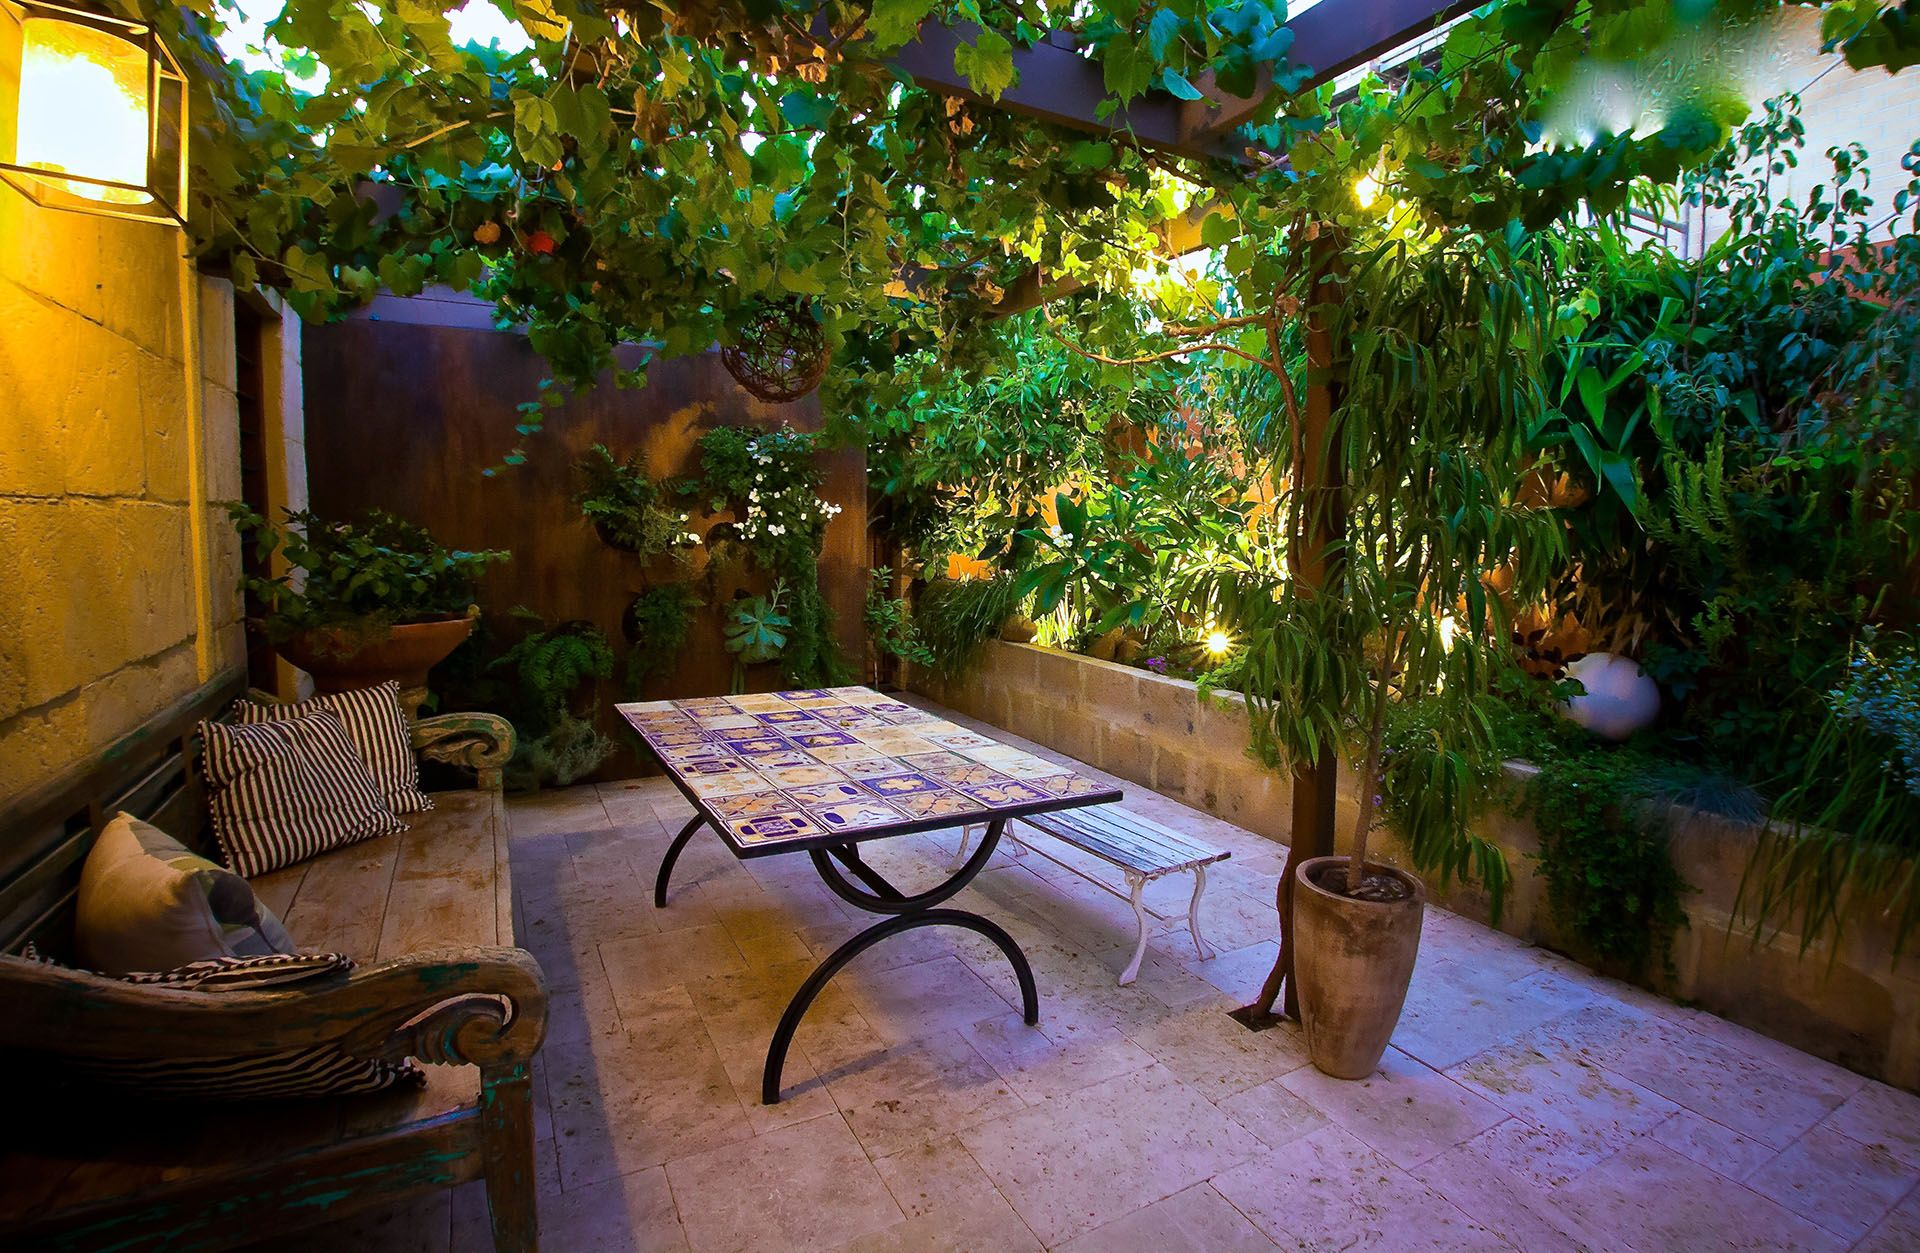 Exterior courtyard renovation mediterranean garden design for French style courtyard ideas